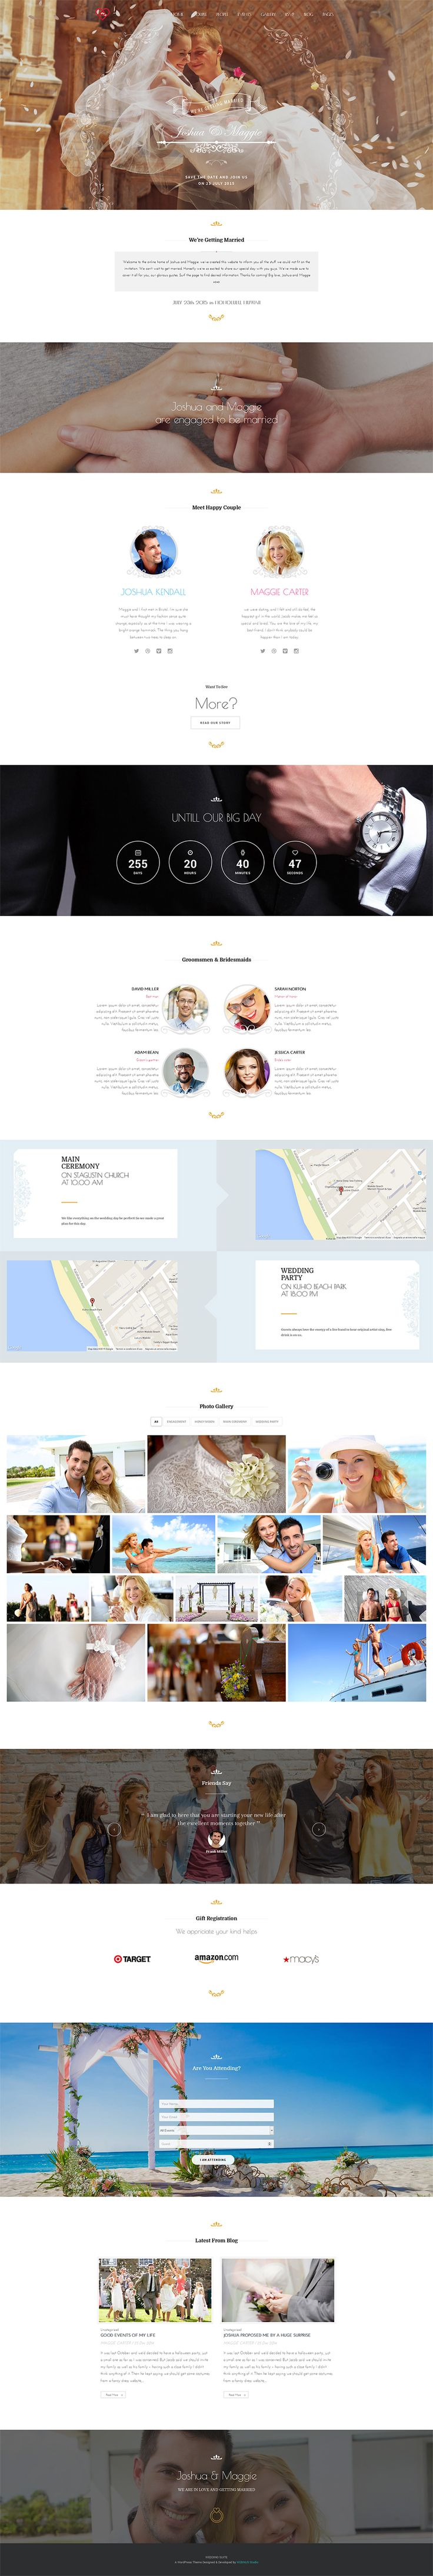 Wedding Suite - WordPress Wedding Theme #website #wedding #web #wordpress #wp #theme [www.pinterest.com/loganless/]